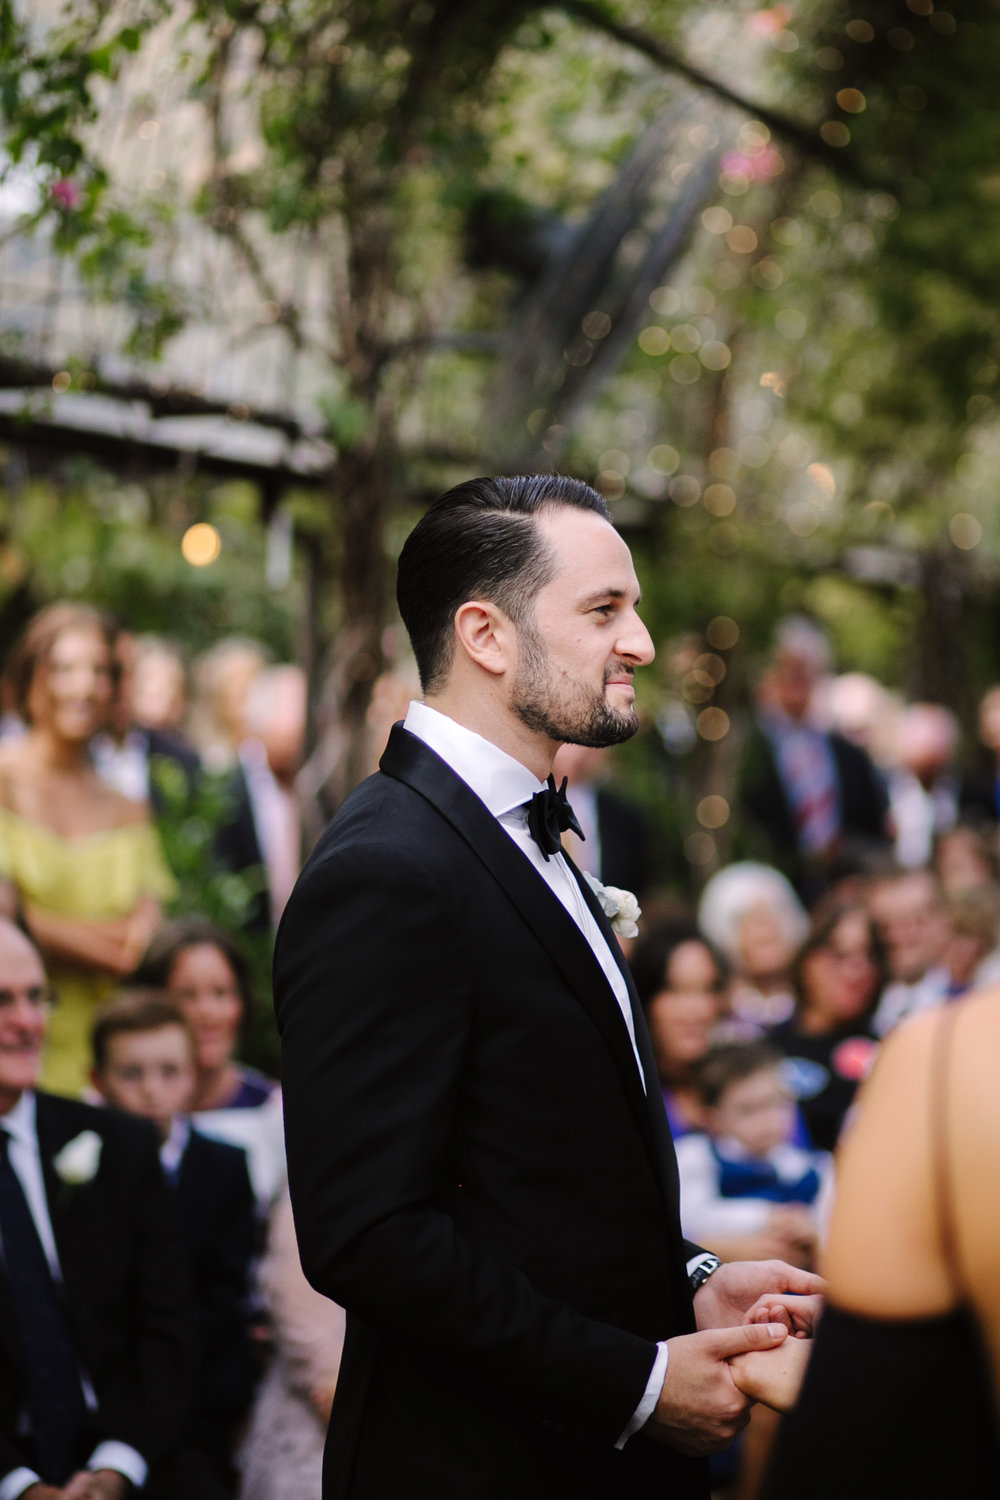 180223_justinaaron_wedding_charlotte_david_h-118.jpg